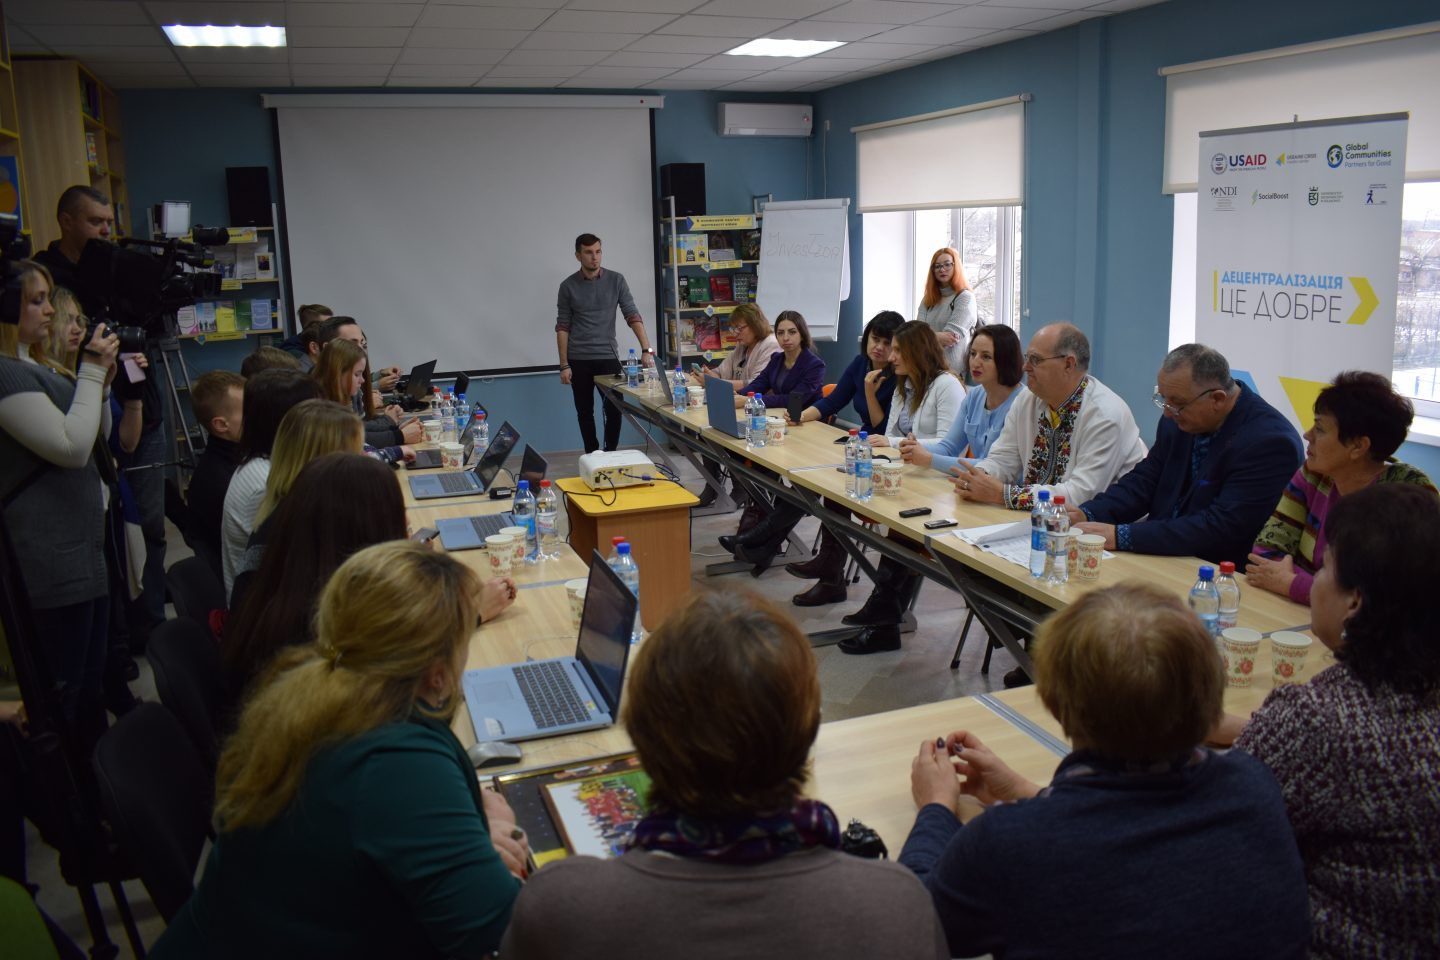 Cinema Club and Youth Resource Centre opened in Halytsynivska AH